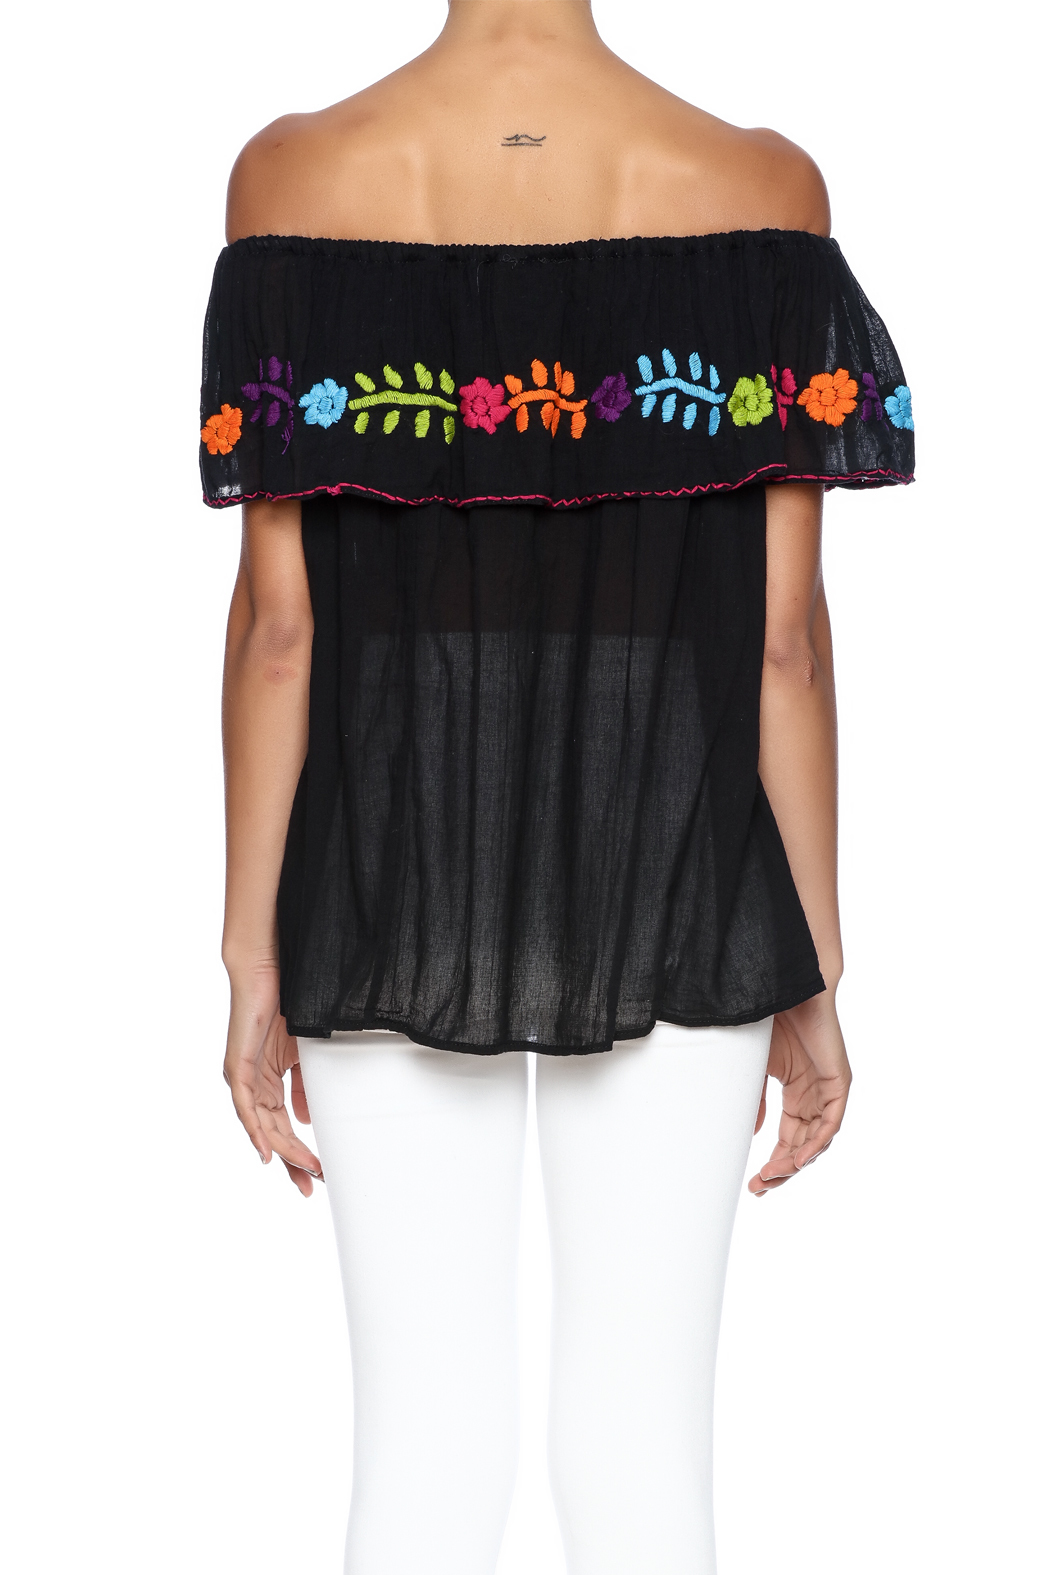 Nativa Mexican Vuelo Blouse - Back Cropped Image